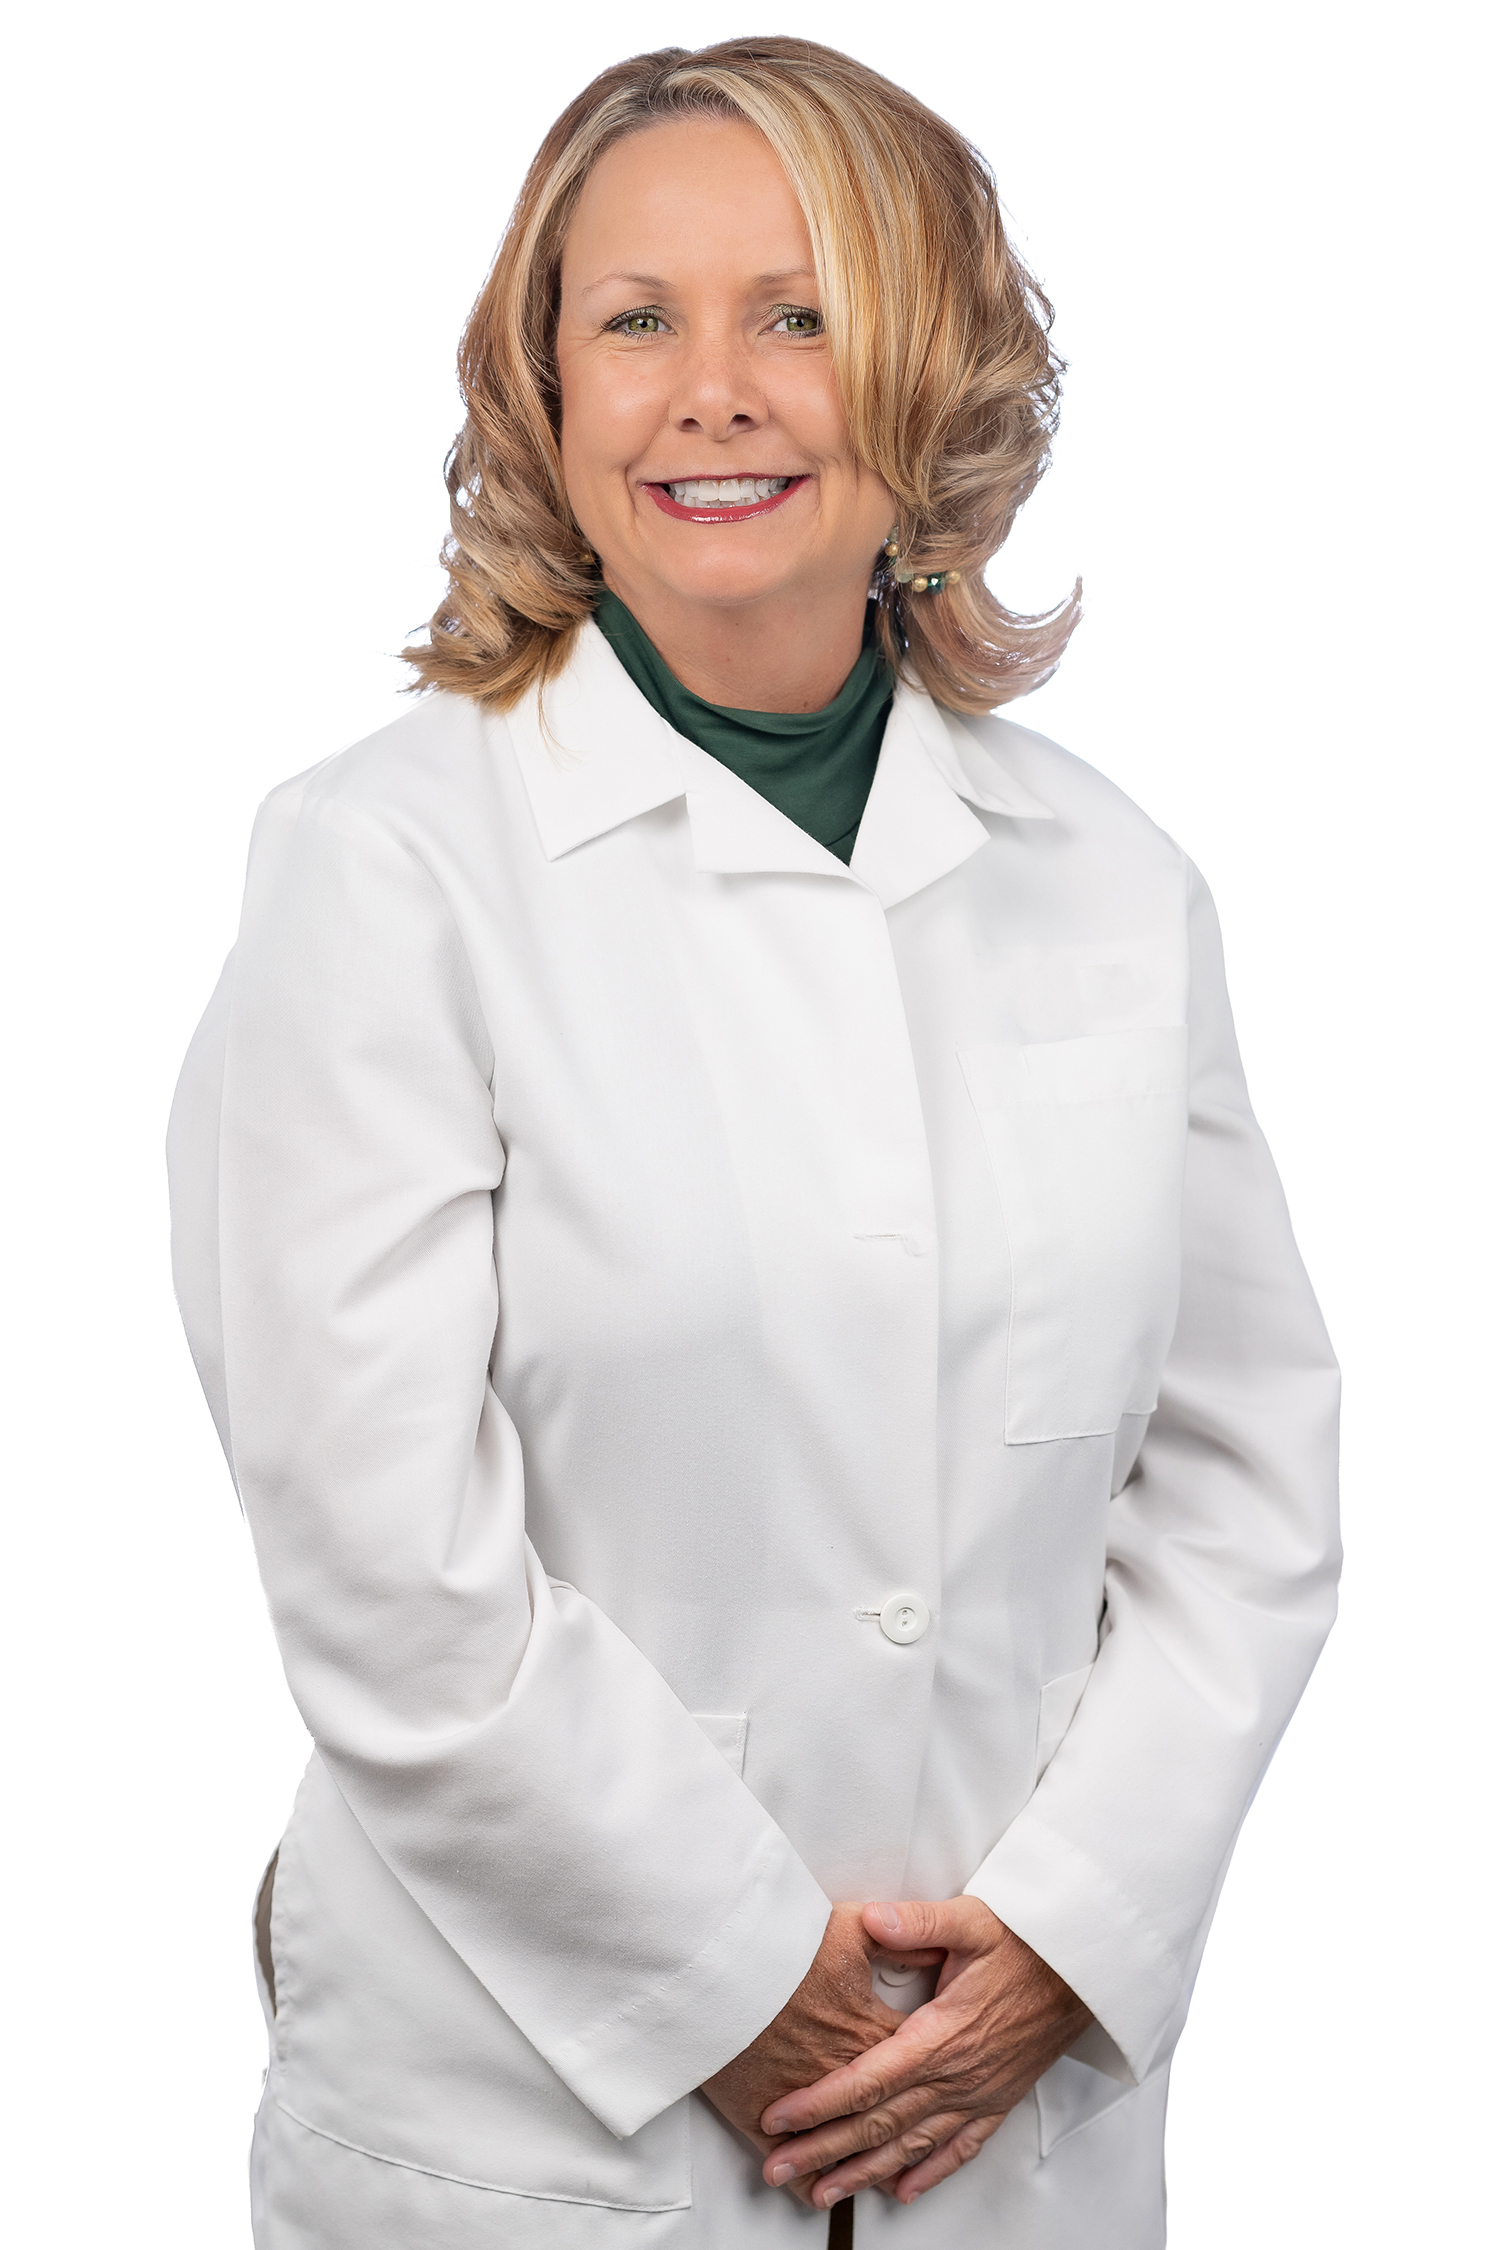 Pam Temples, MD